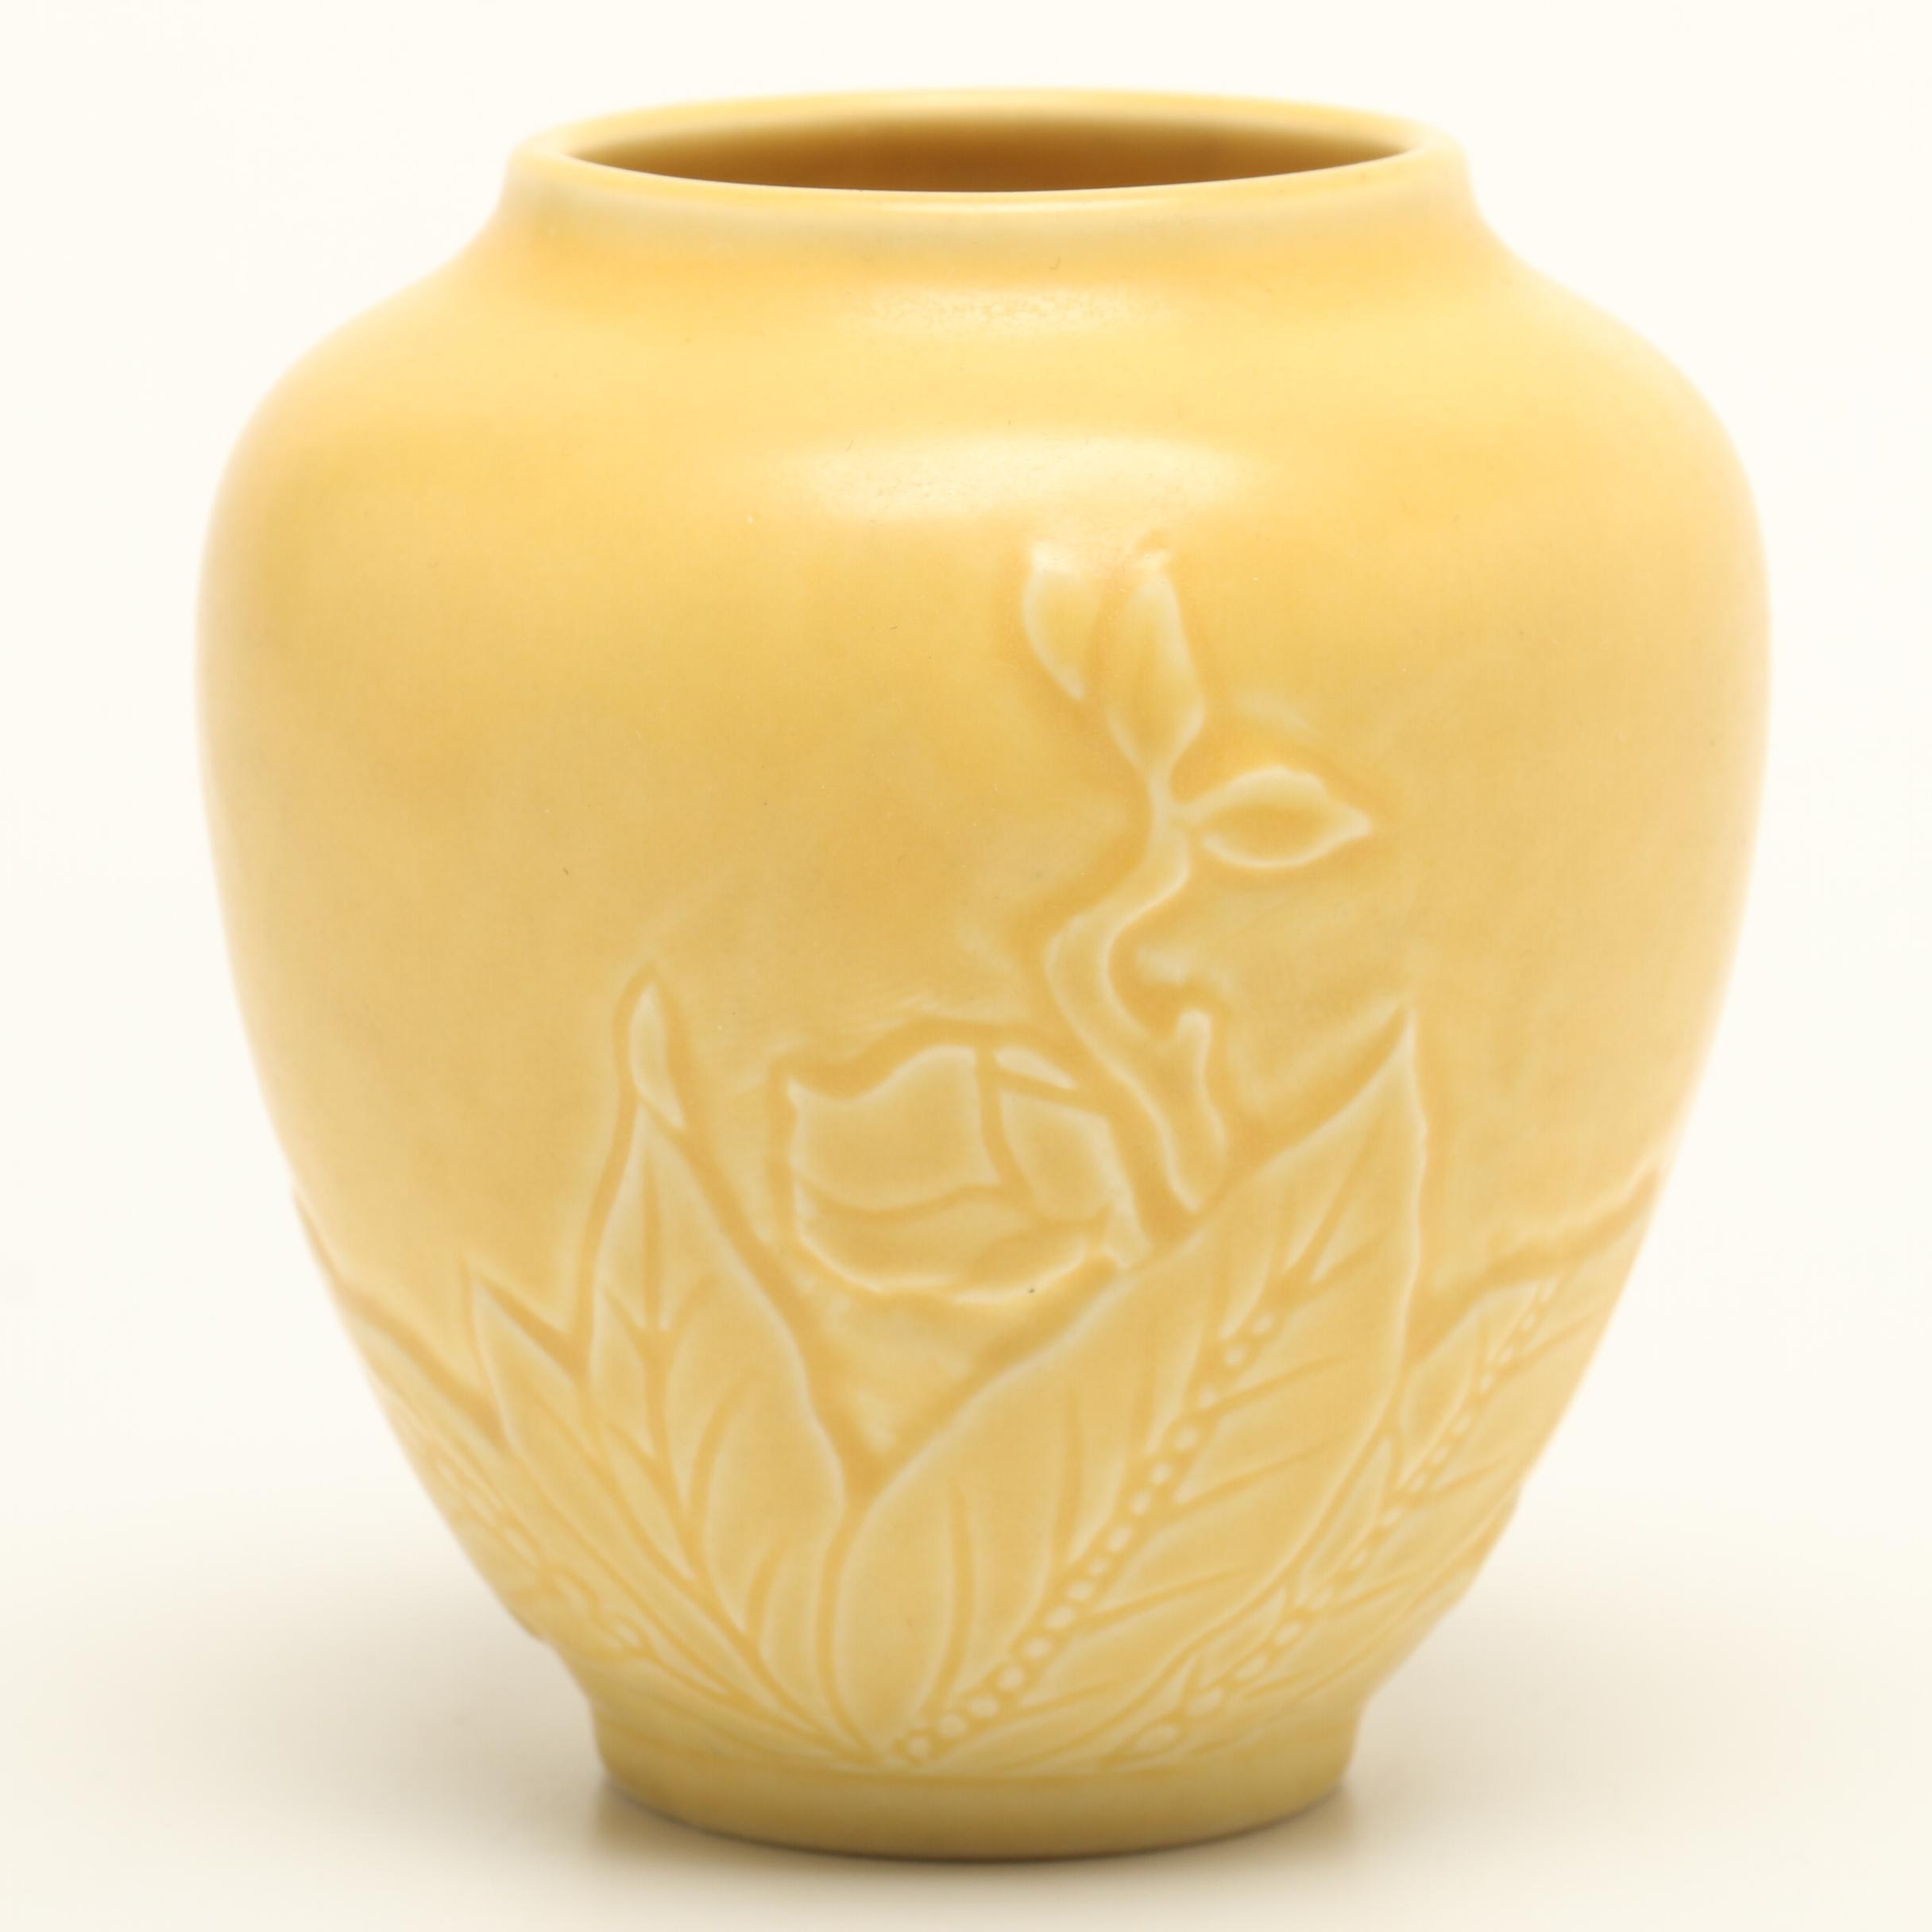 1935 Rookwood Yellow Matte Pottery Vase